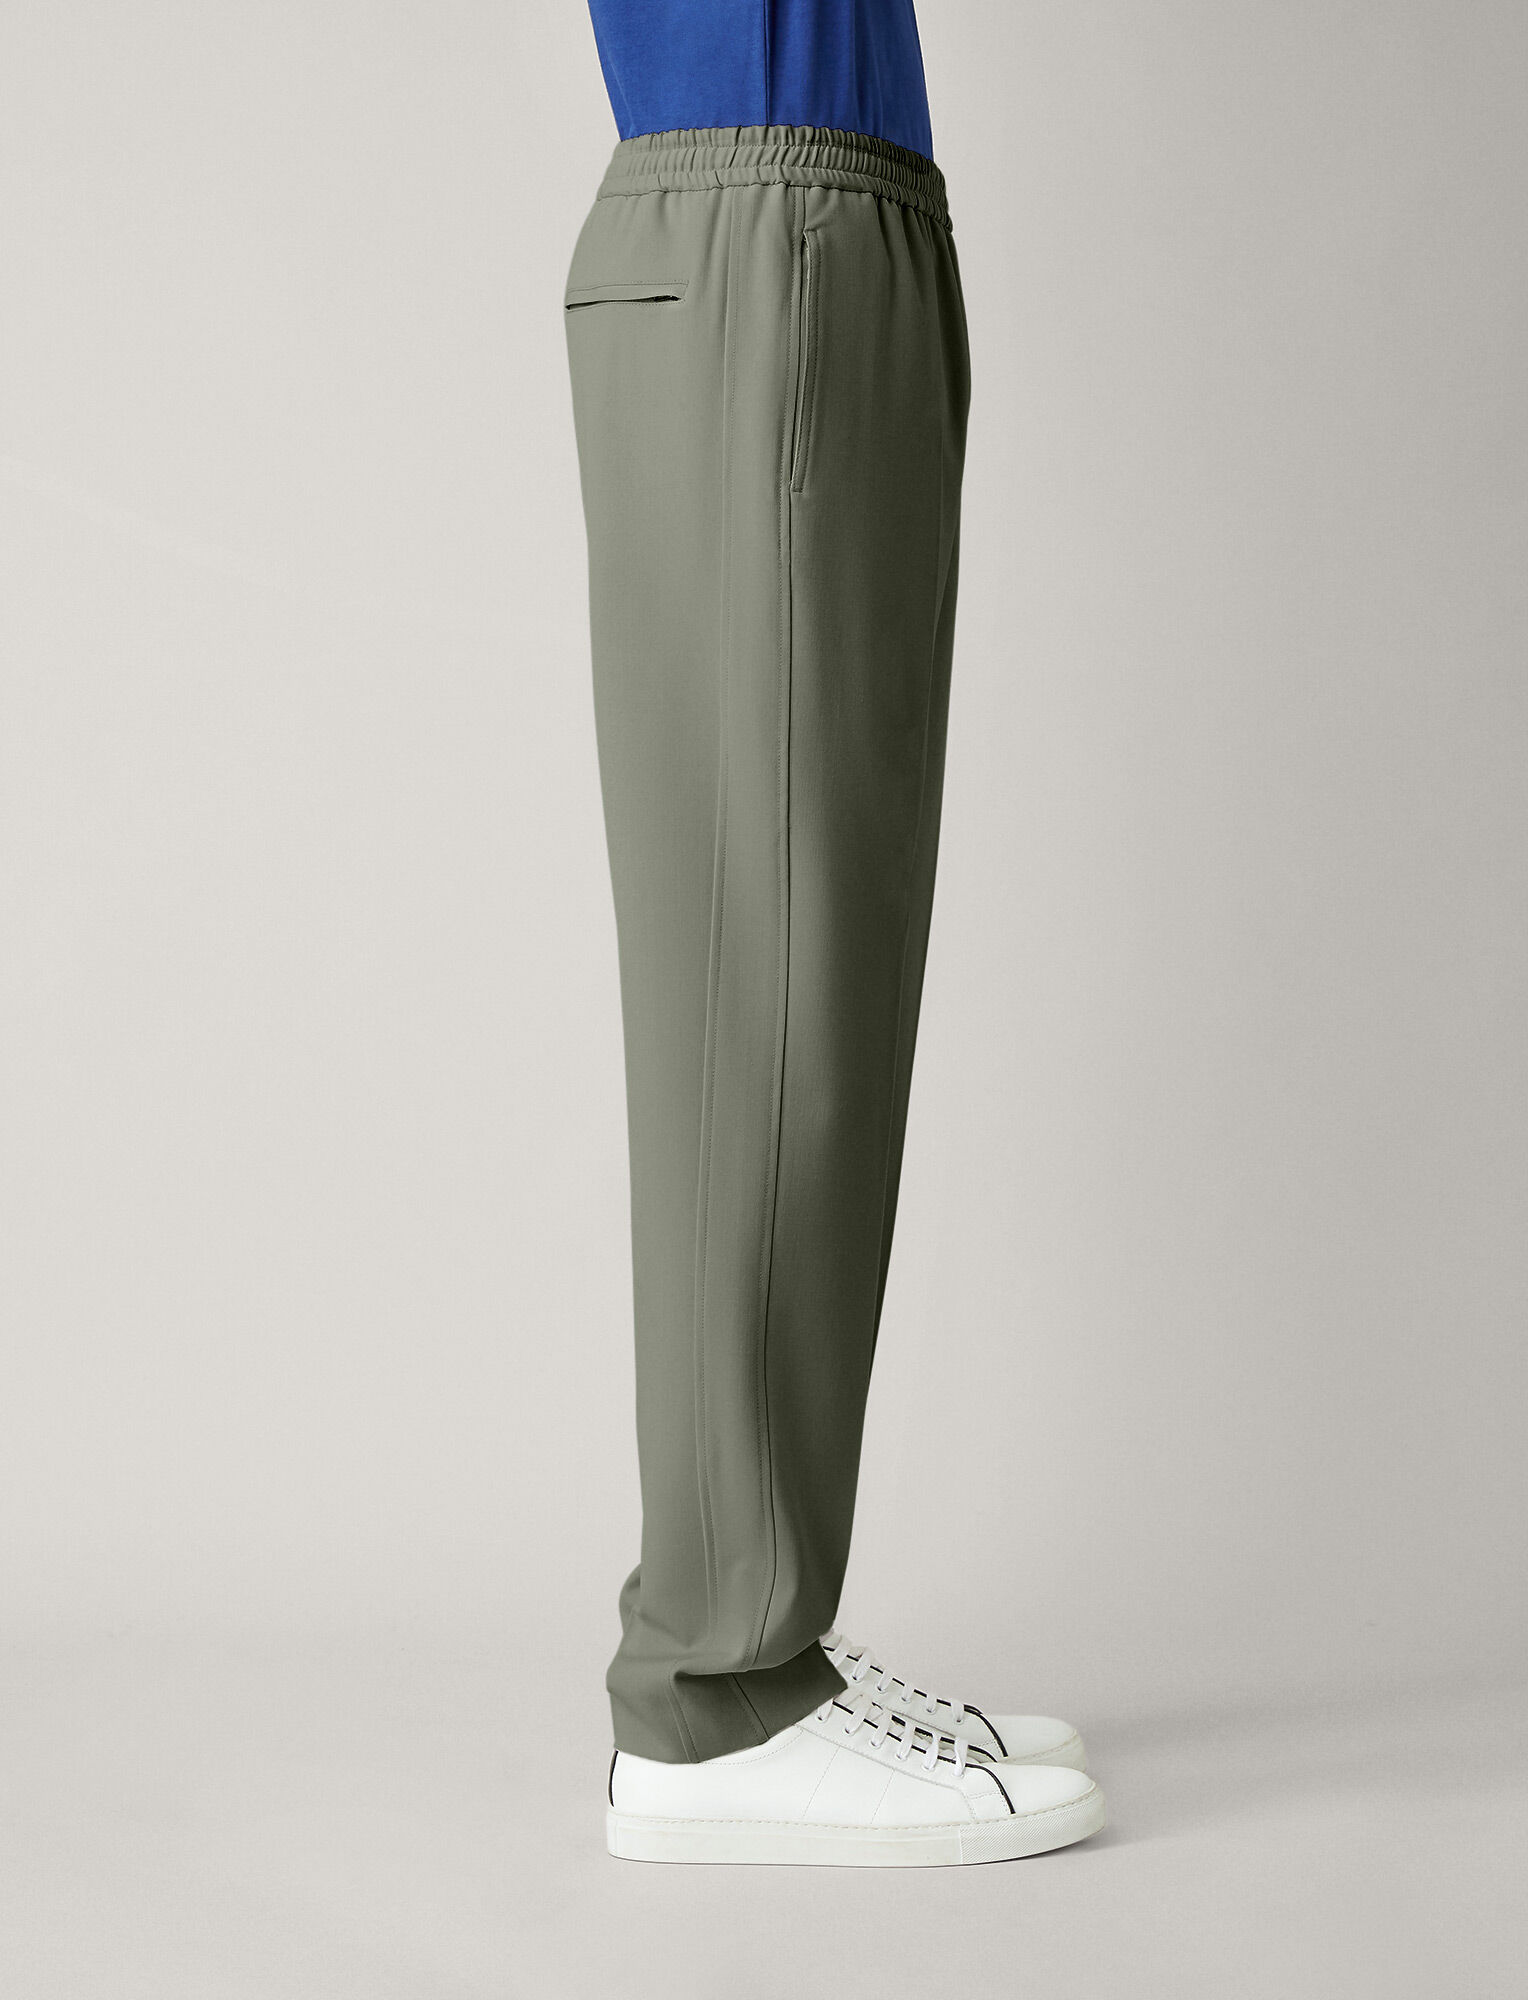 Joseph, Ettrick Techno Wool Stretch Trousers, in SAGE